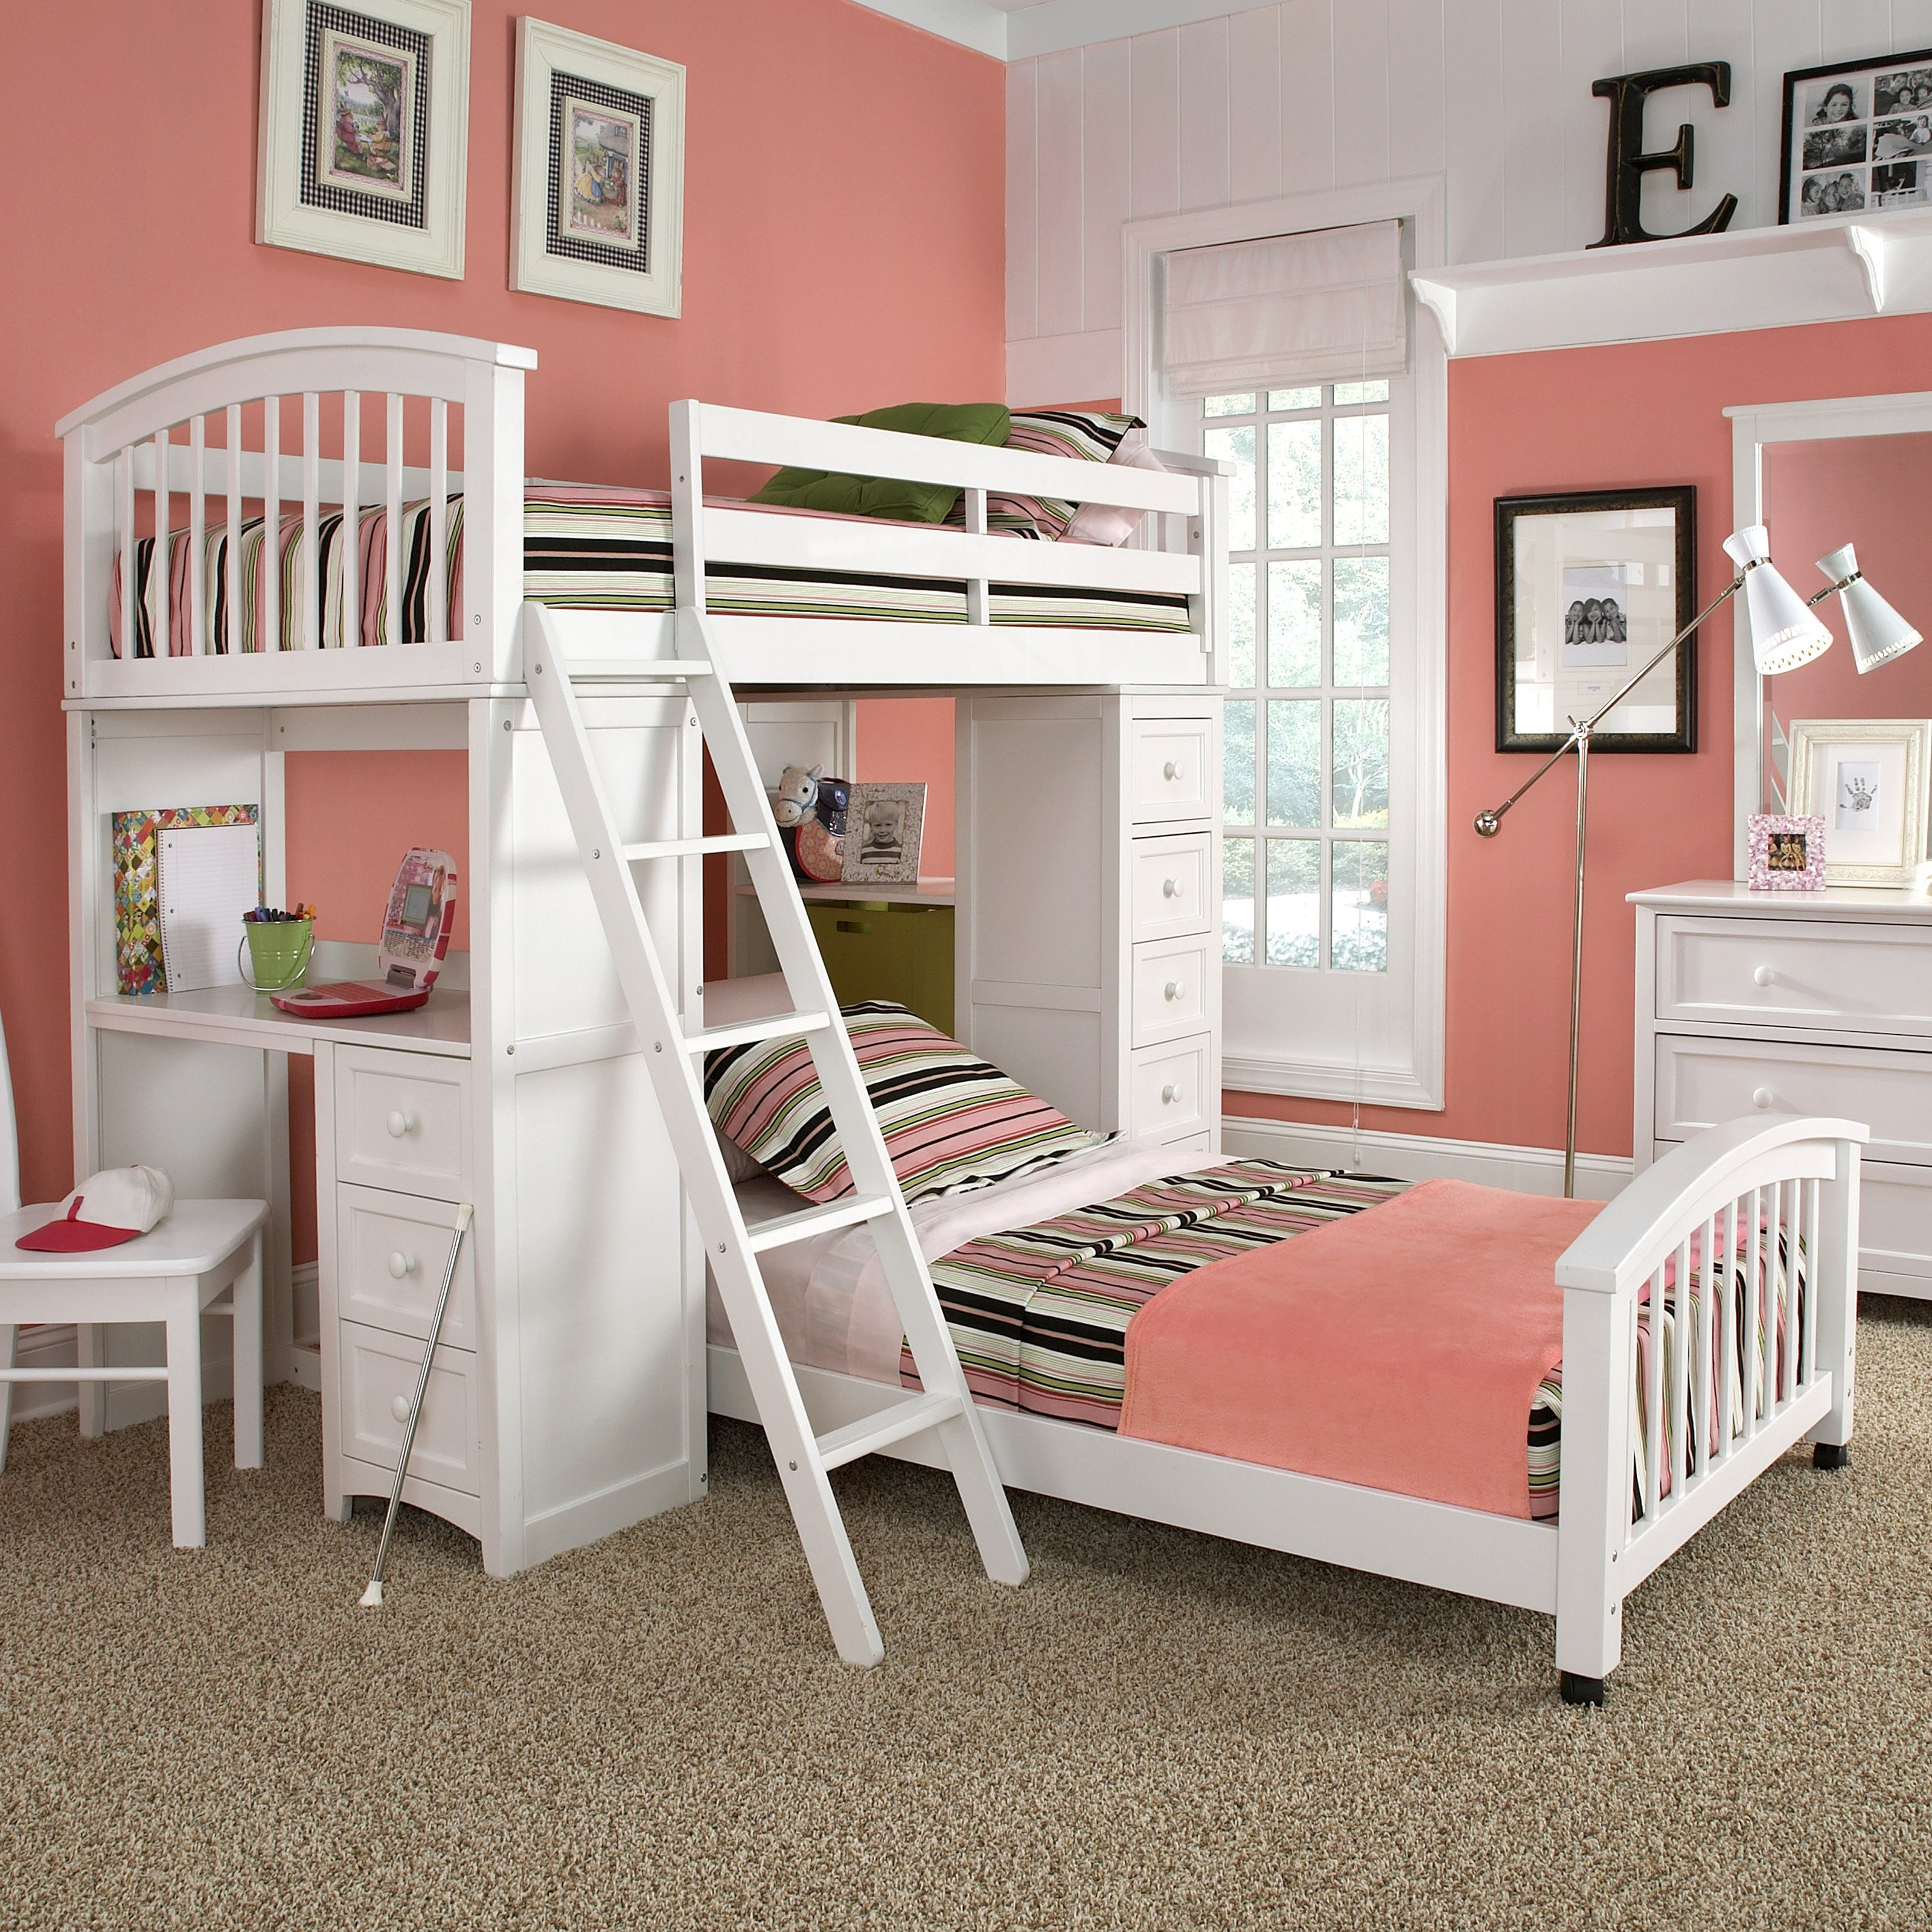 charming loft beds for teenagers in white with pink bedding and desk before the pink wall plus floor standing lamp for girls bedroom decor ideas